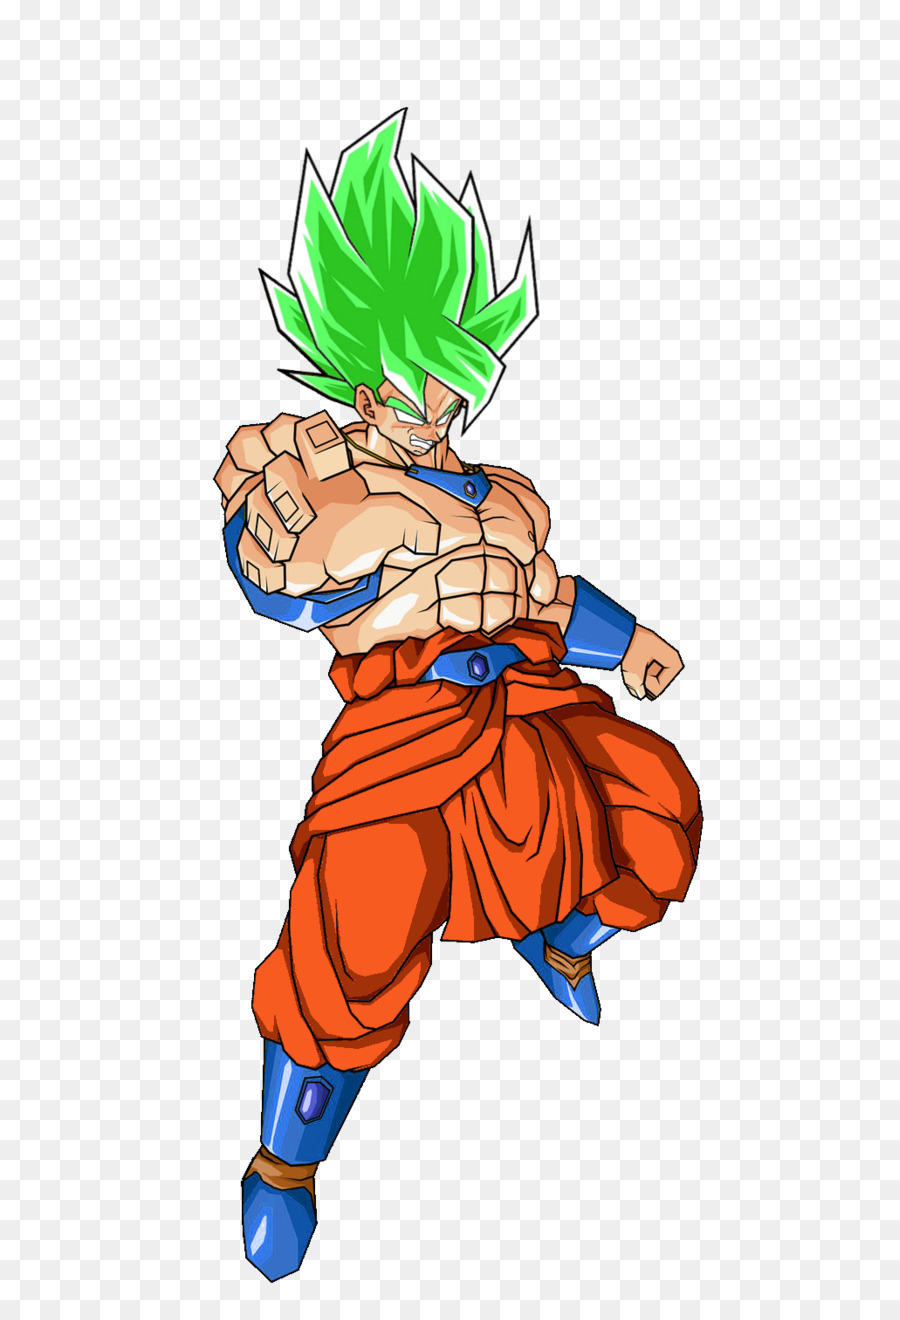 Dragon ball heroes clipart png transparent stock Superhero Background png download - 611*1309 - Free Transparent Goku ... png transparent stock